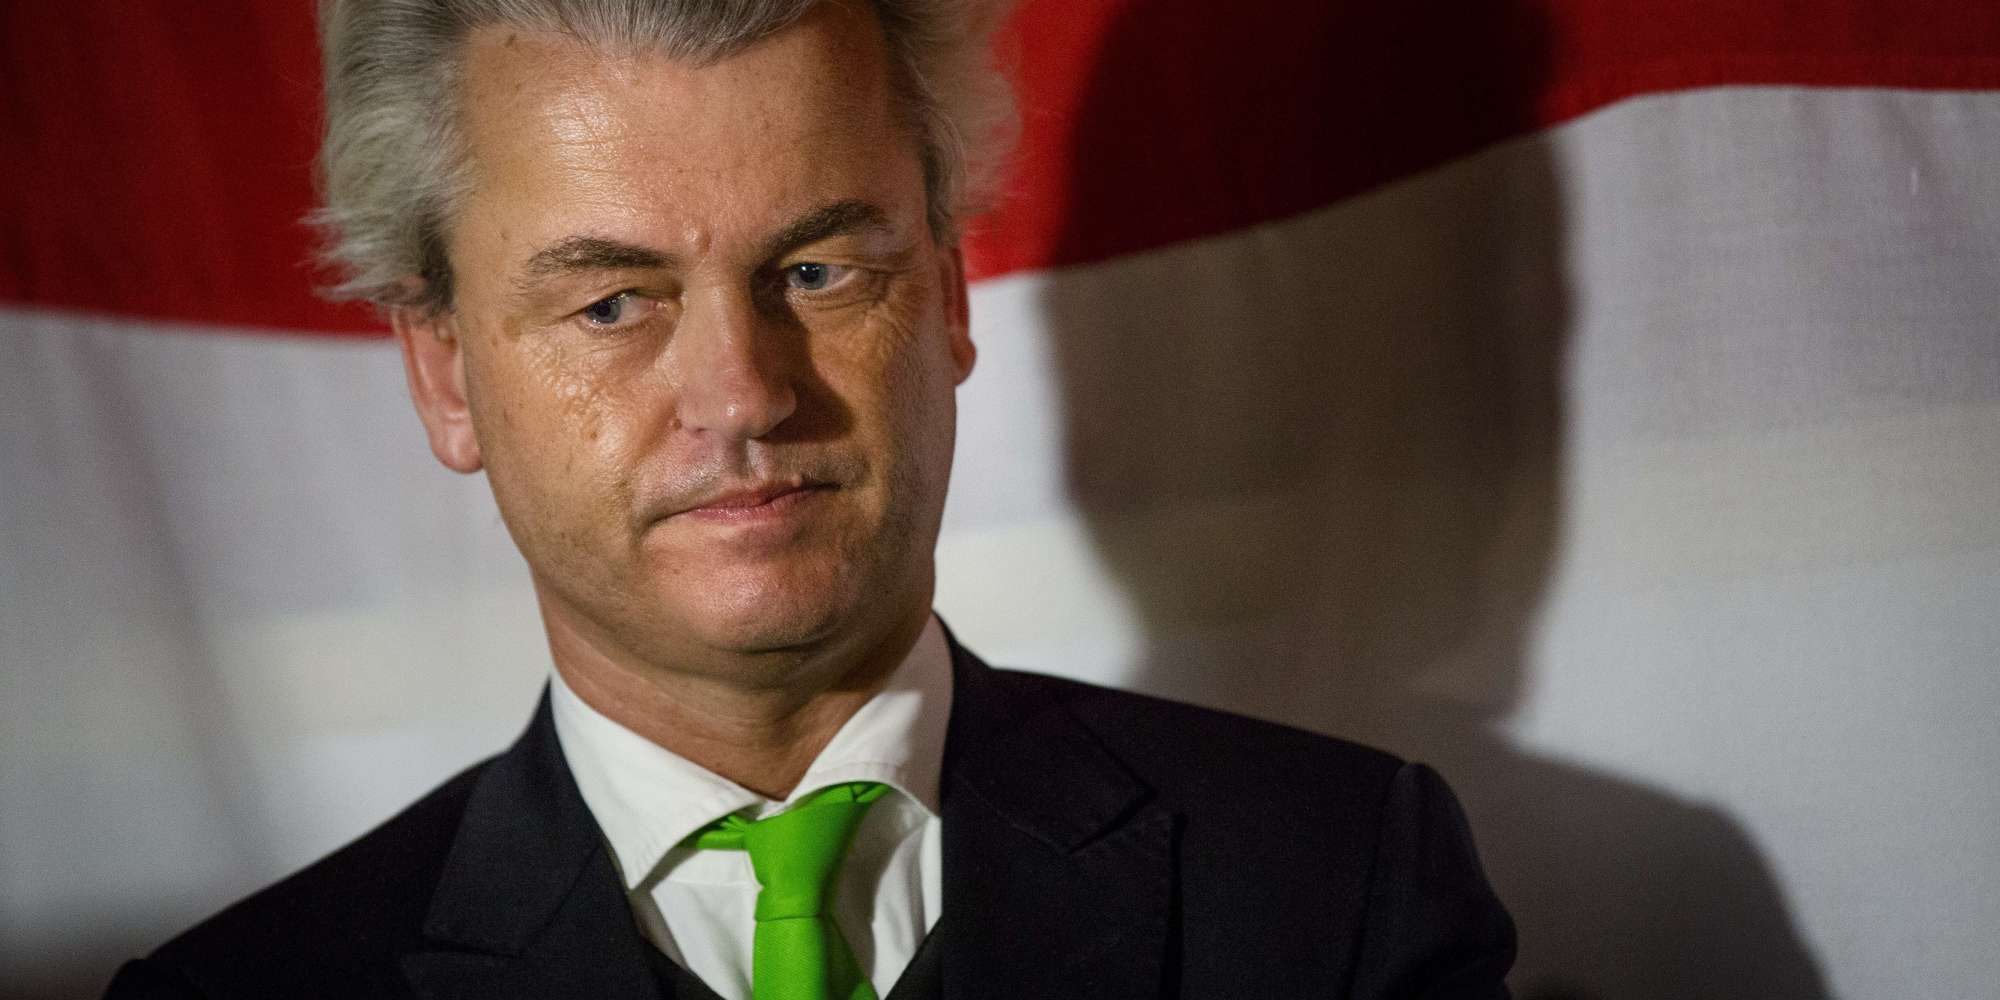 Geert Wilders' Dutch Right-Wing Party Stumbles In EU Vote | HuffPost